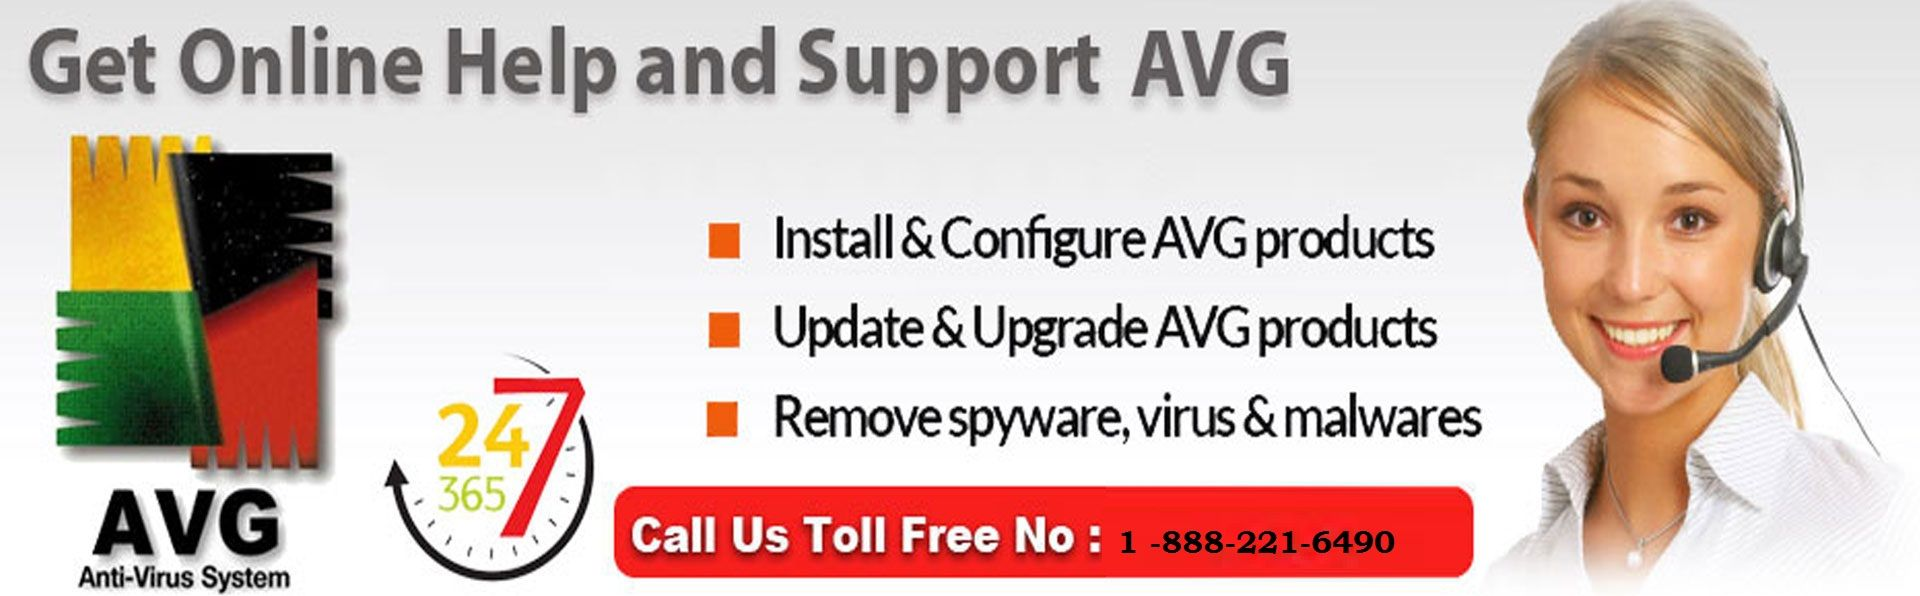 Avg Antivirus Technical Support Services, Avg Contact